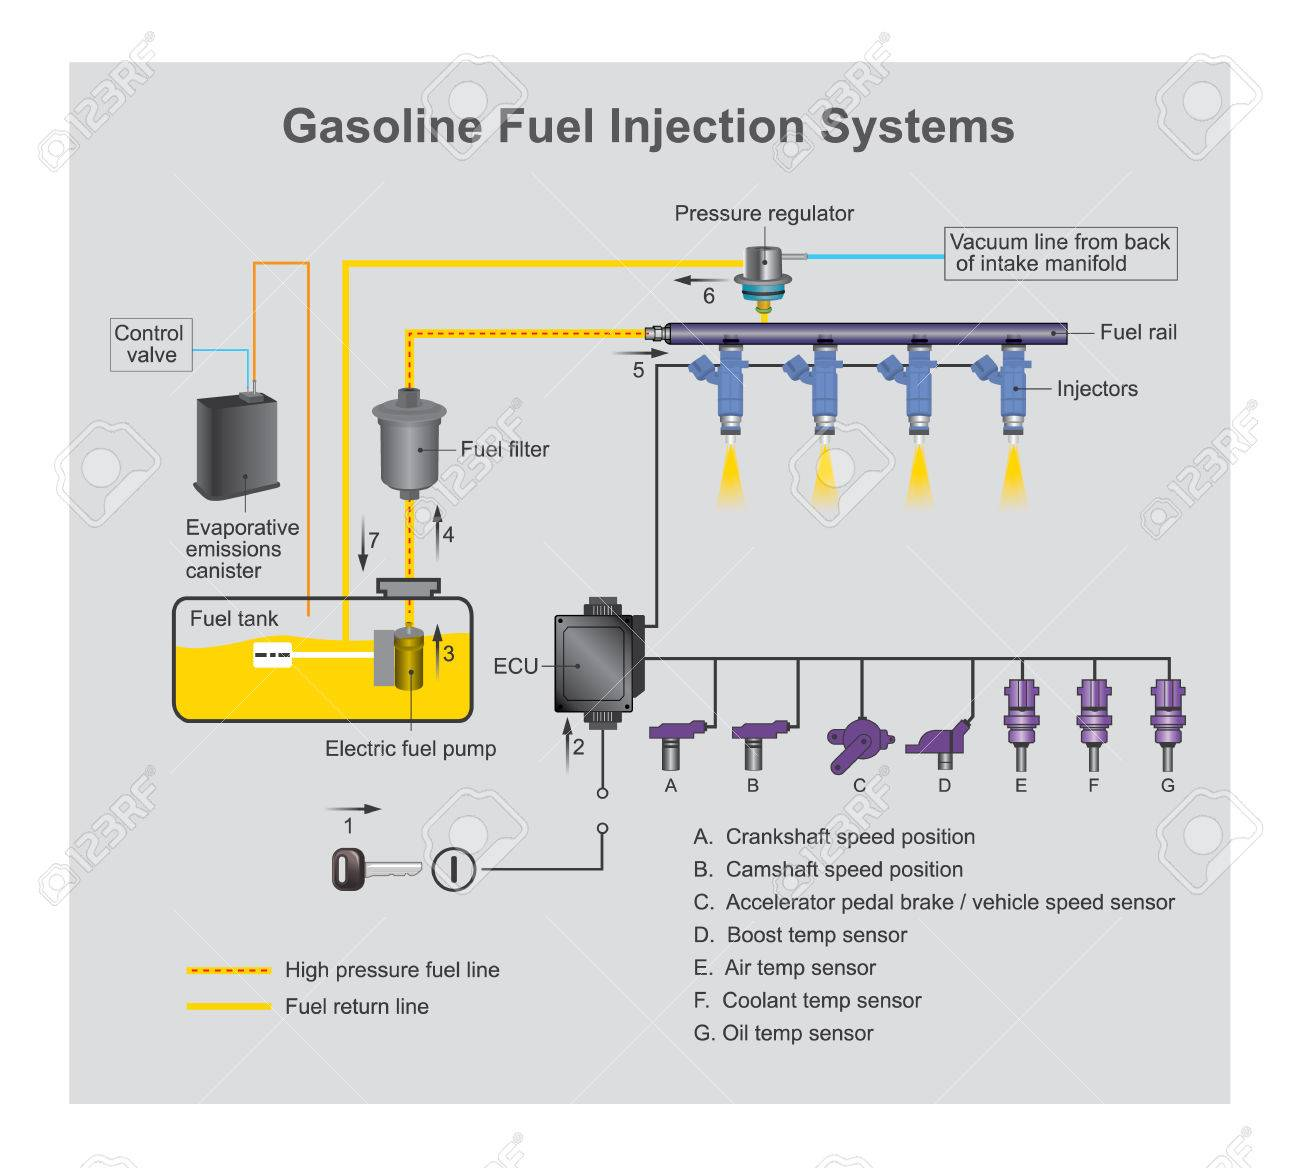 hight resolution of gasoline fuel system diagram wiring diagram technic gasoline fuel injection system is the introduction of fuel